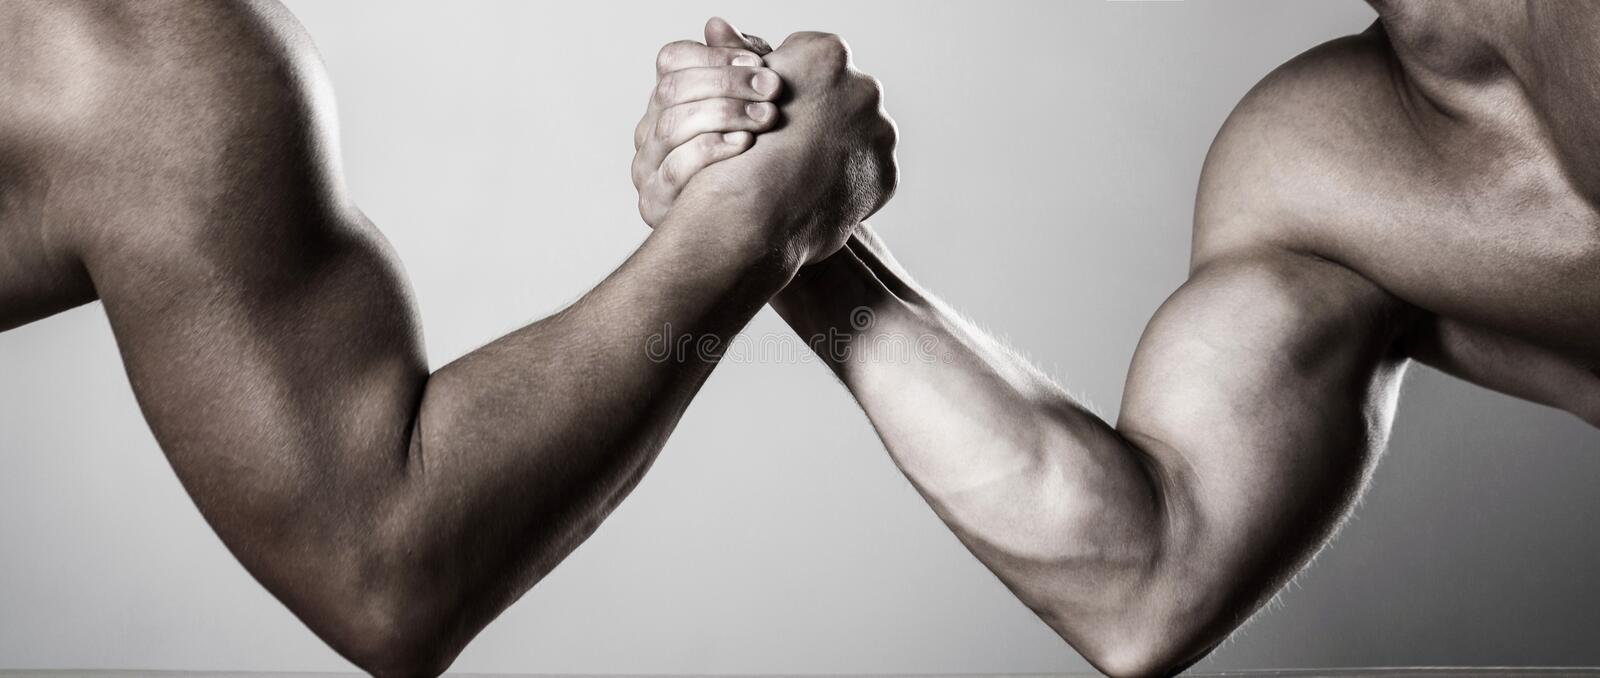 Two men arm wrestling. Rivalry, closeup of male arm wrestling. Two hands. Men measuring forces, arms. Hand wrestling. Compete. Hands or arms of man. Muscular stock photos